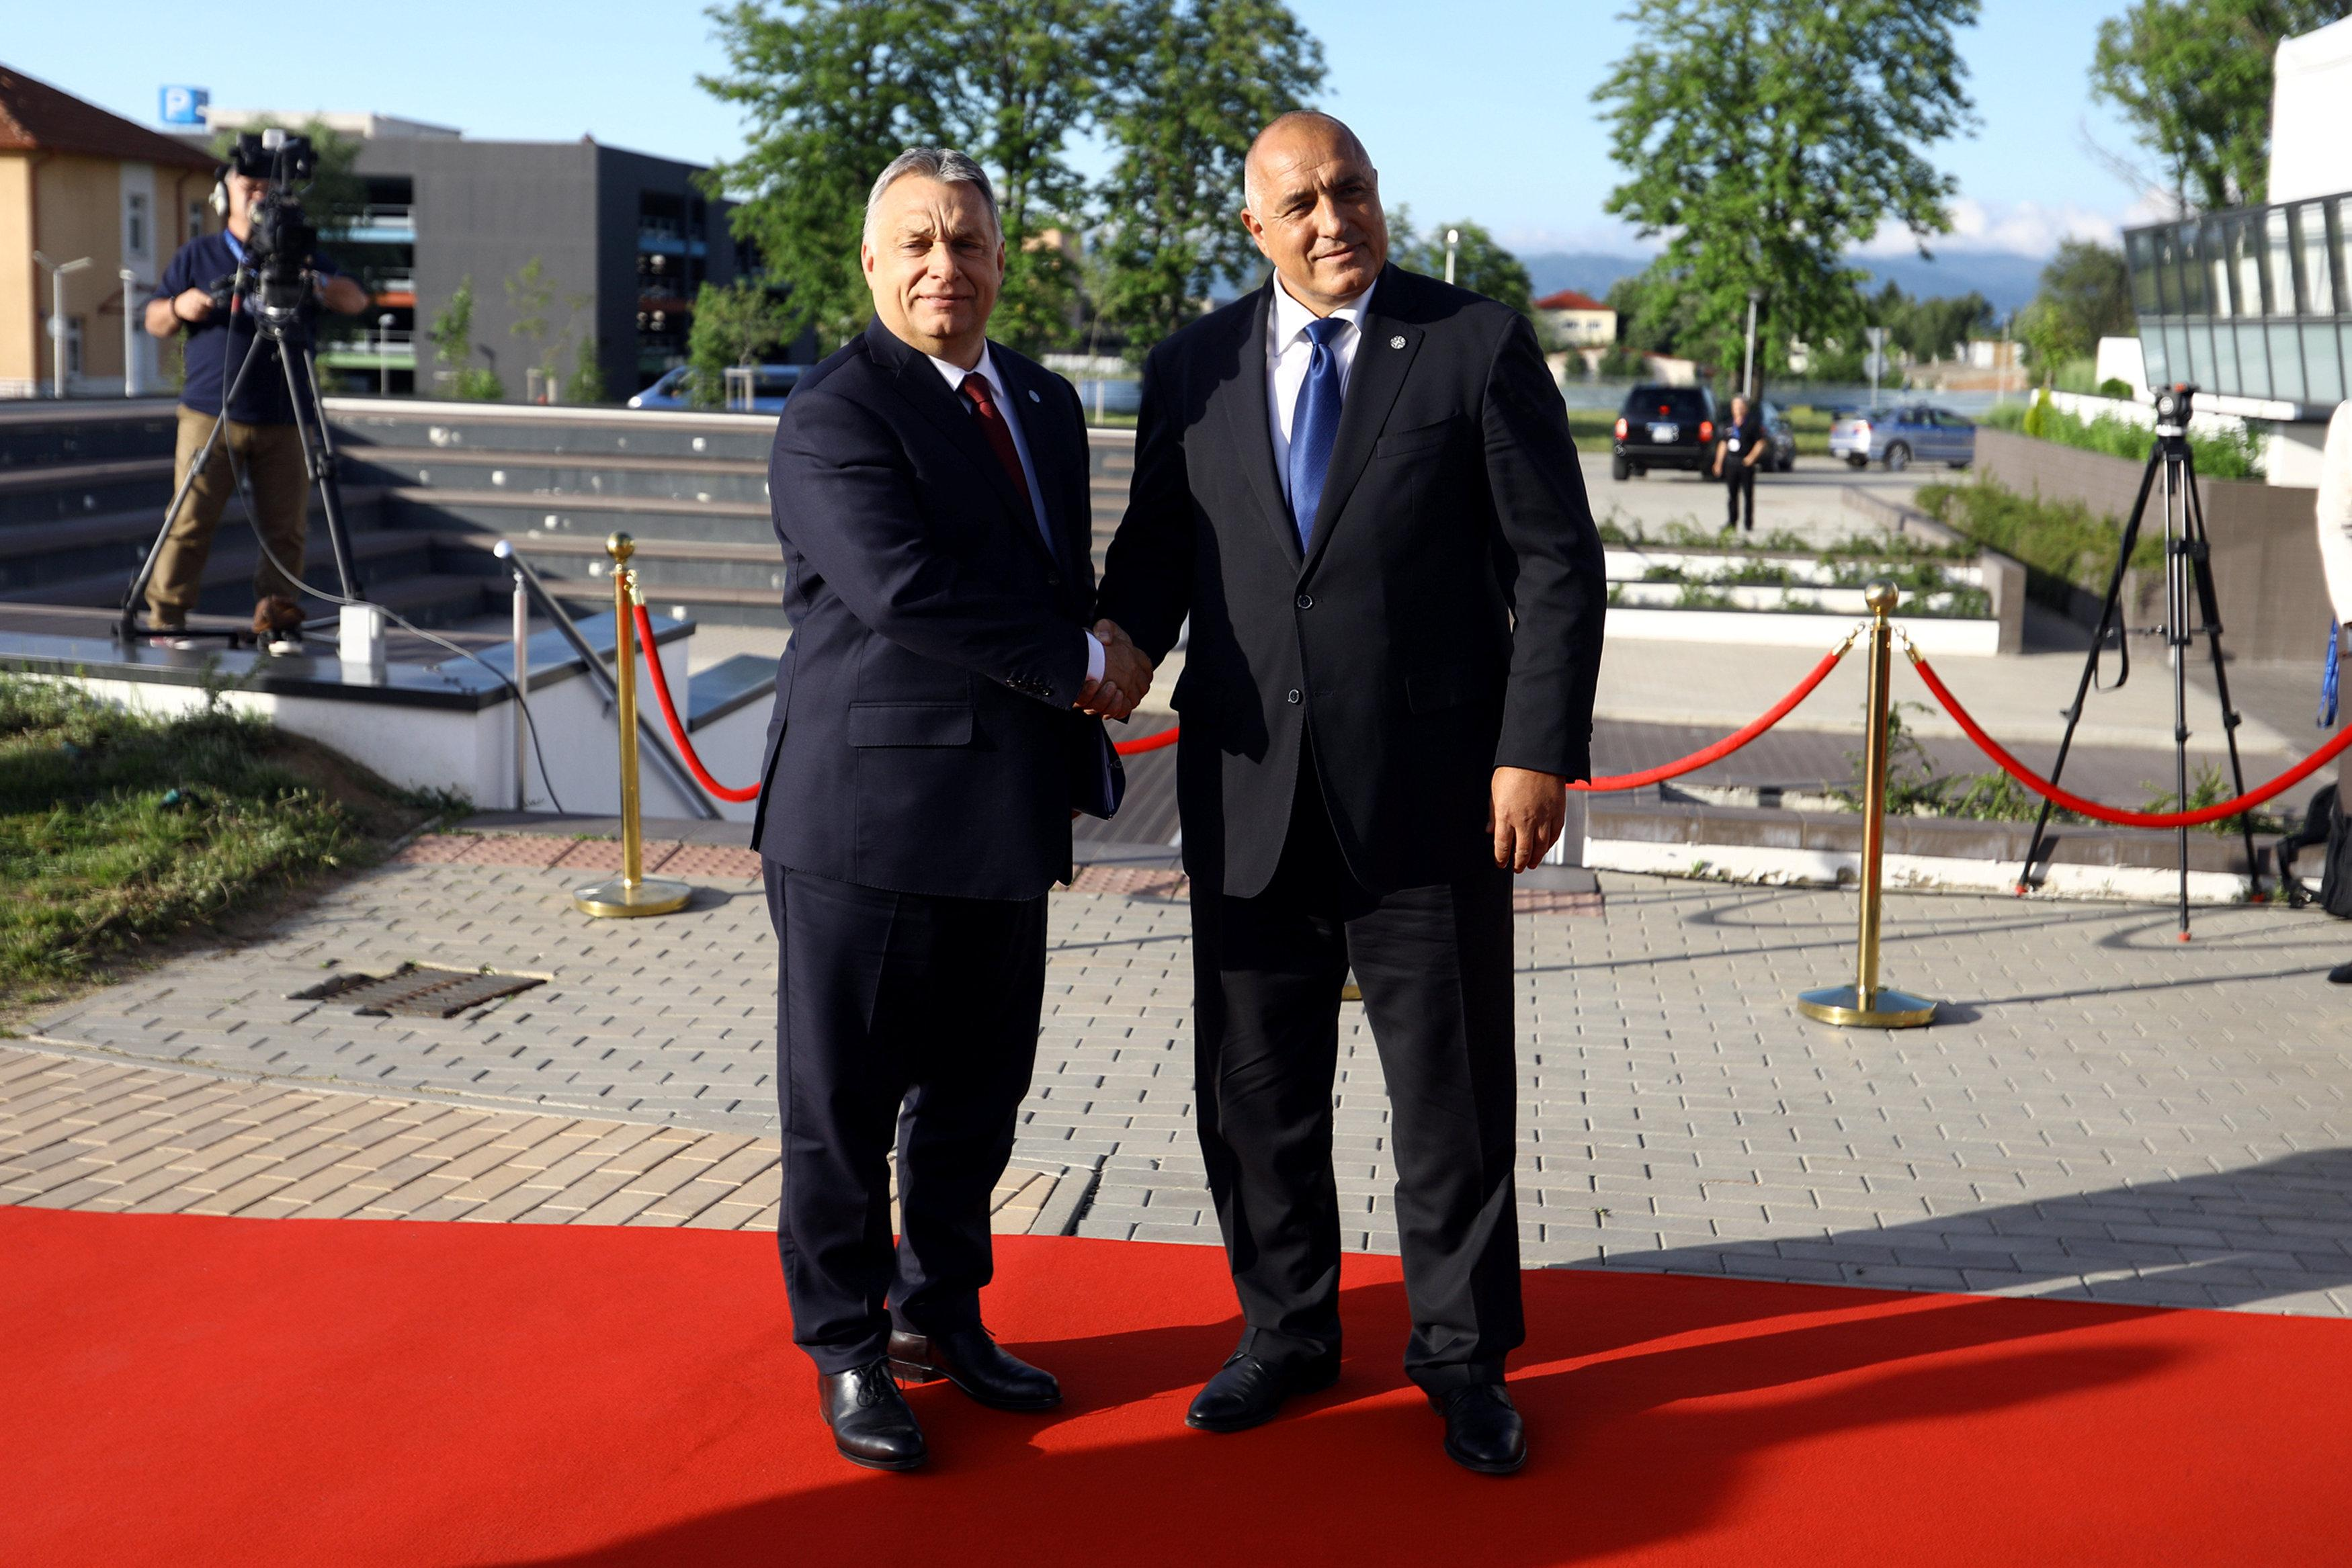 Bulgaria pledges solidarity with Hungary in rights standoff with EU